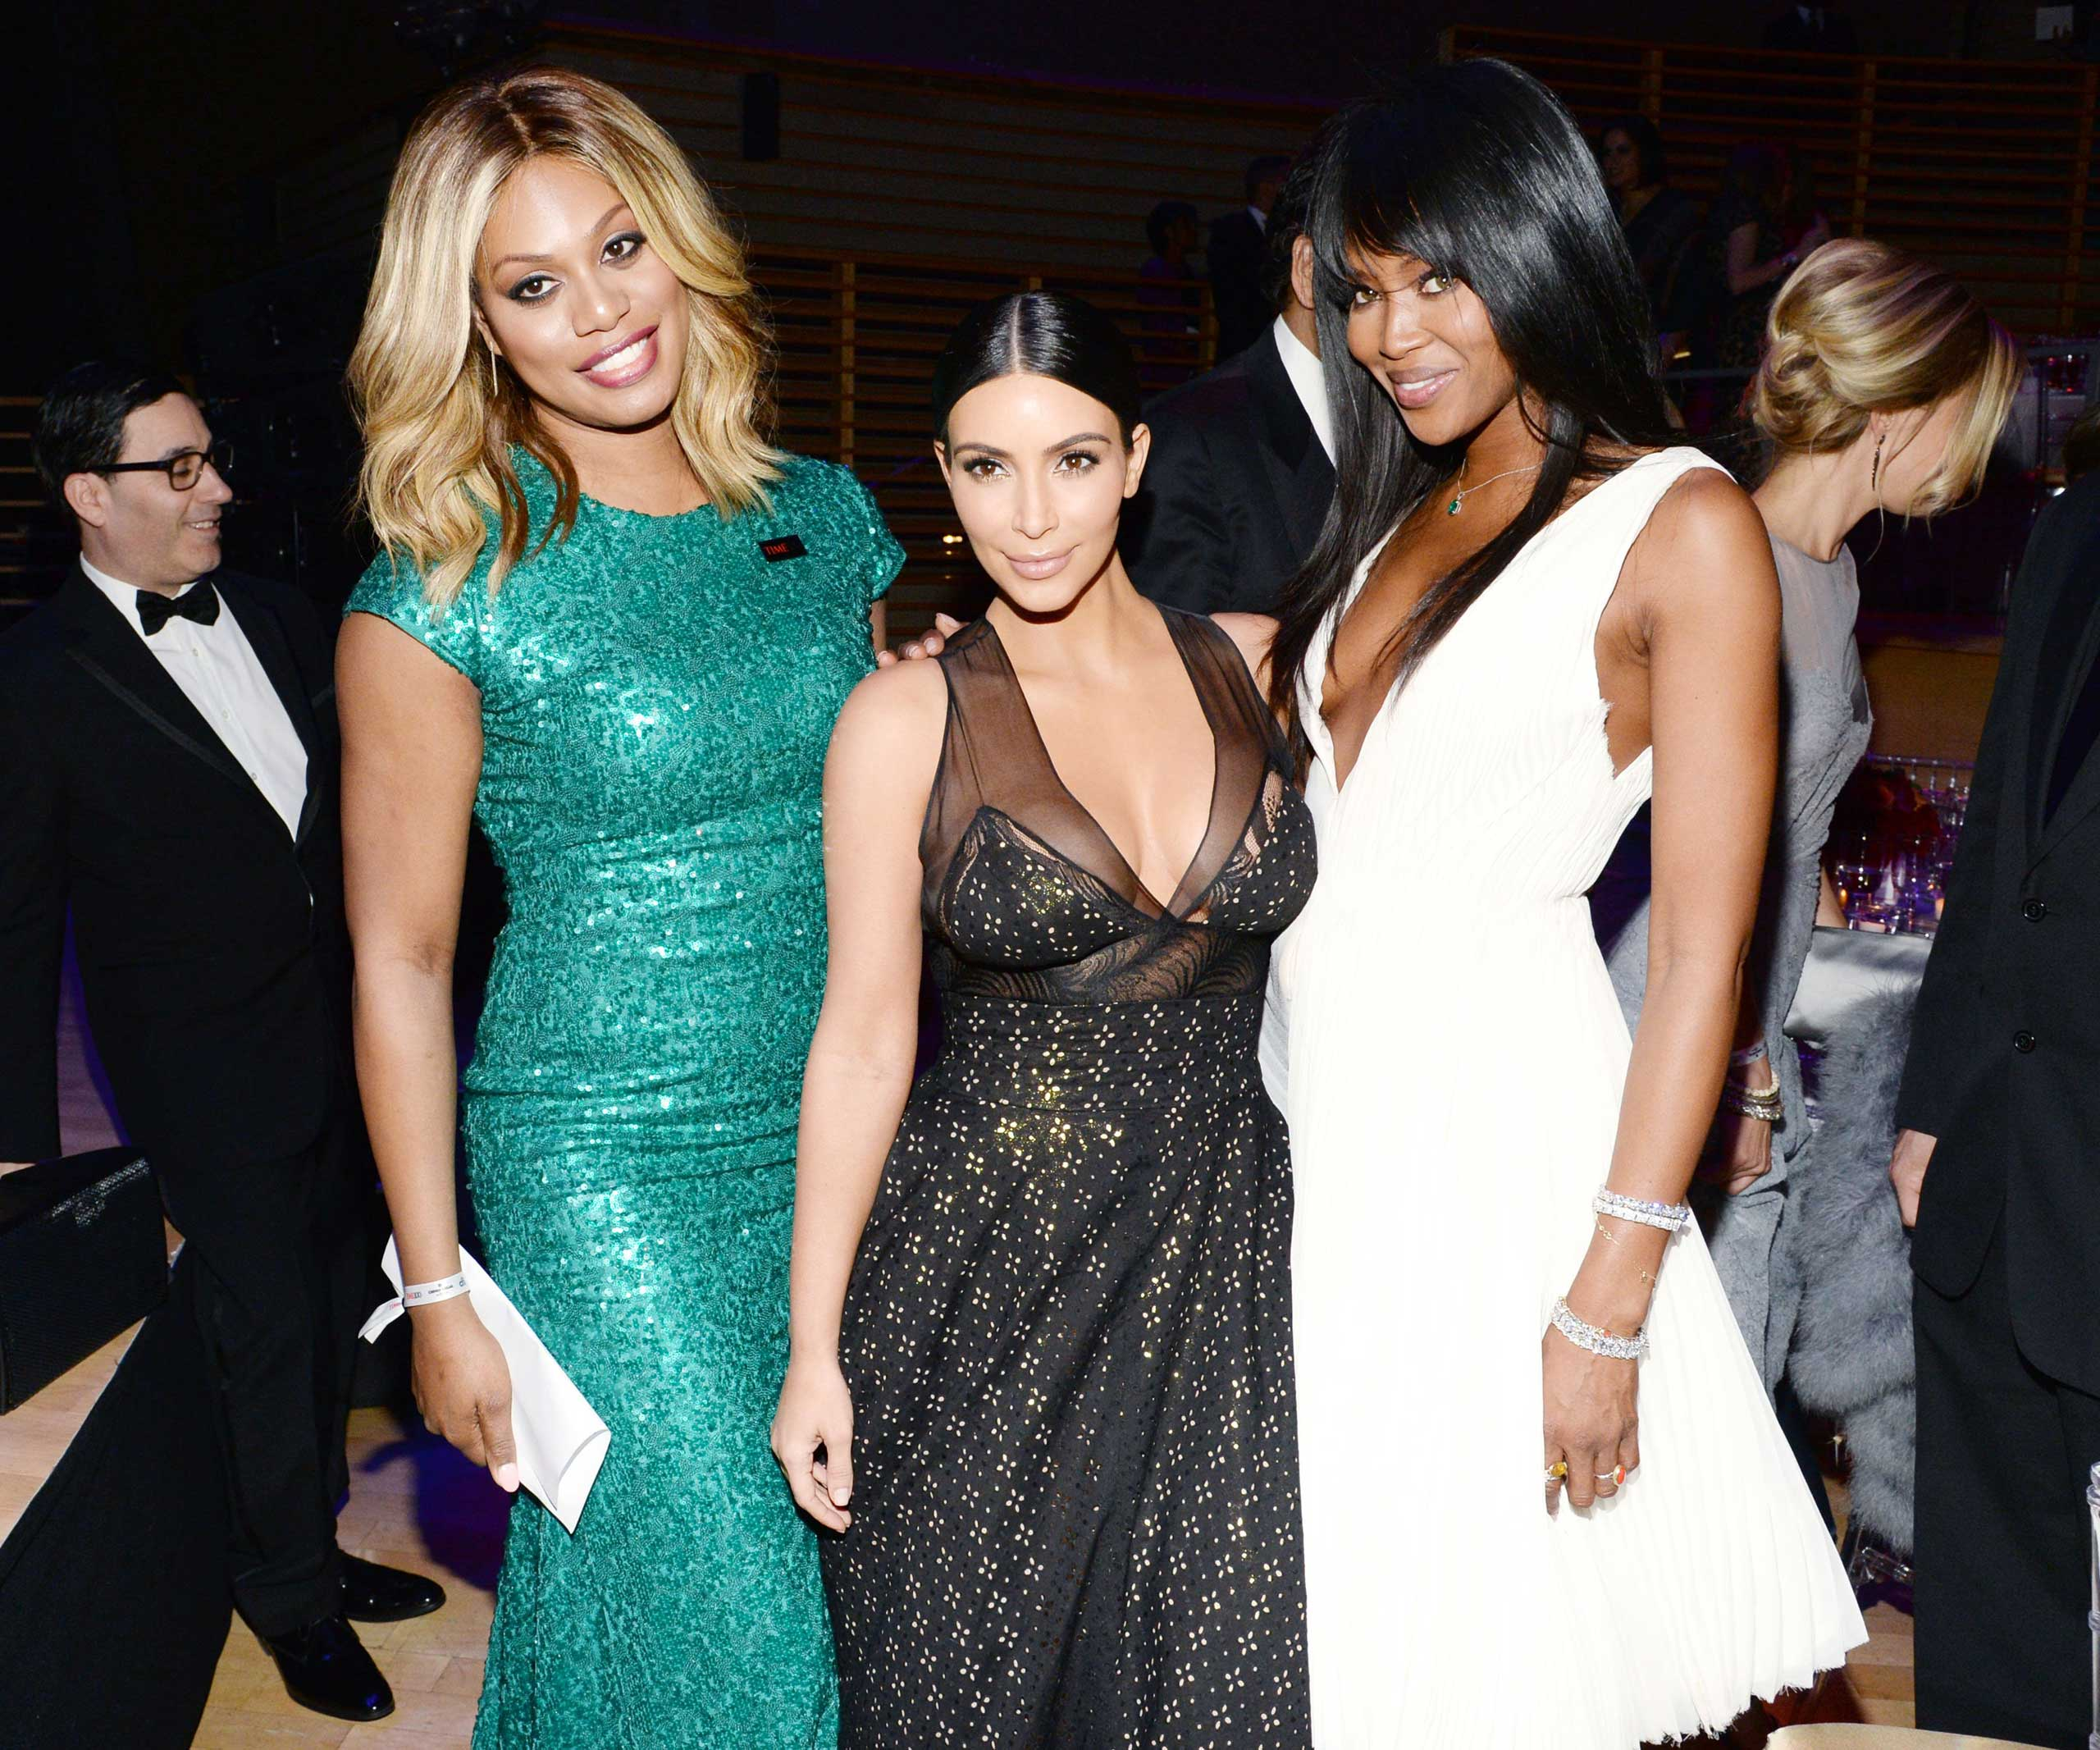 Laverne Cox, Kim Kardashian and Naomi Campbell attend the TIME 100 Gala at Jazz at Lincoln Center in New York City on April 21, 2015.